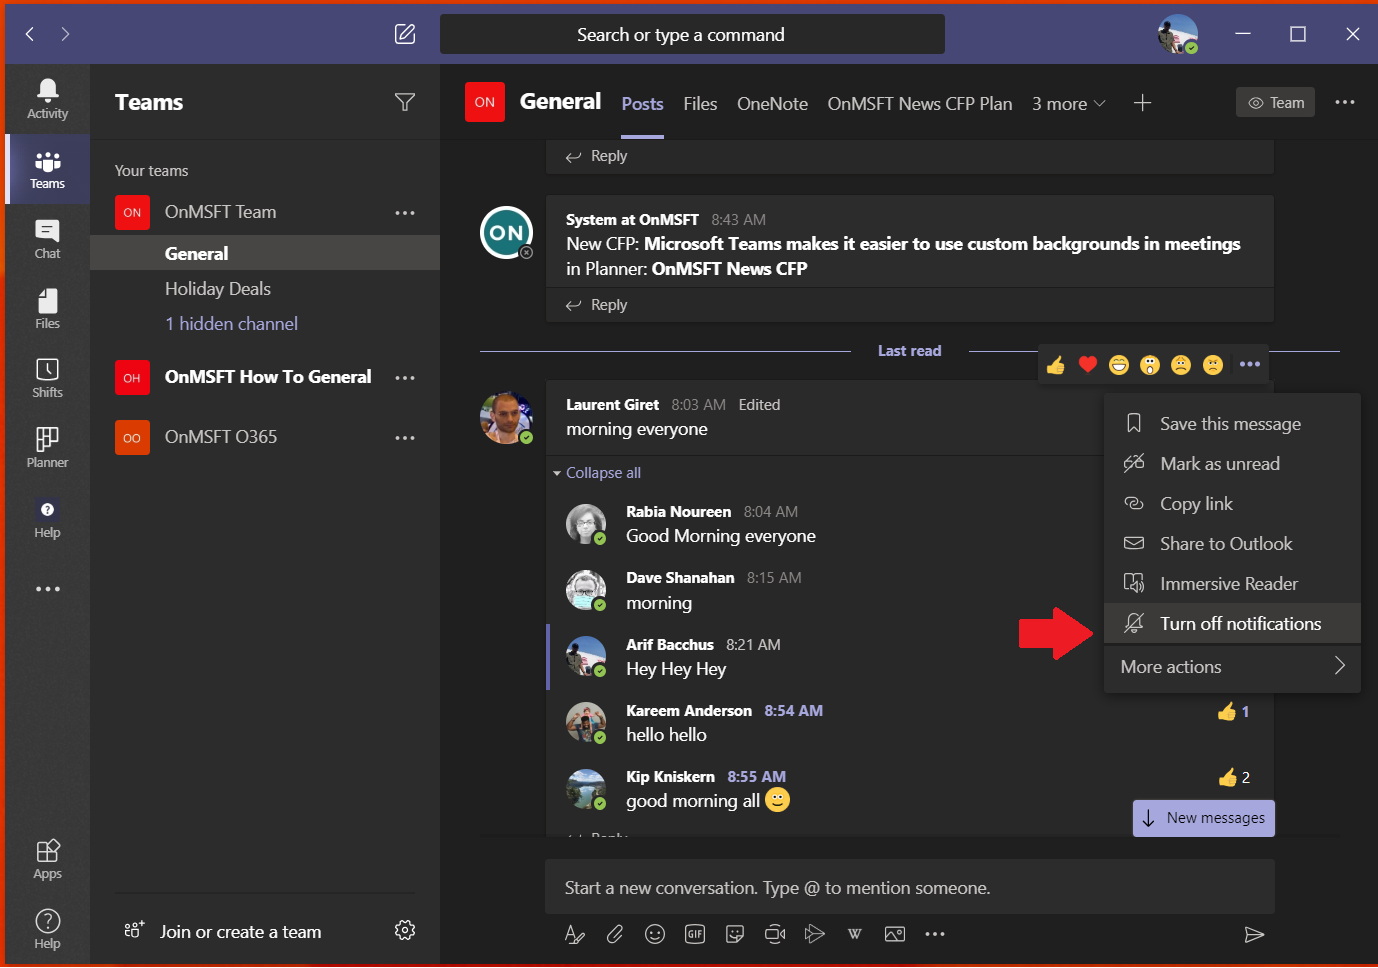 Manage notifications in microsoft teams